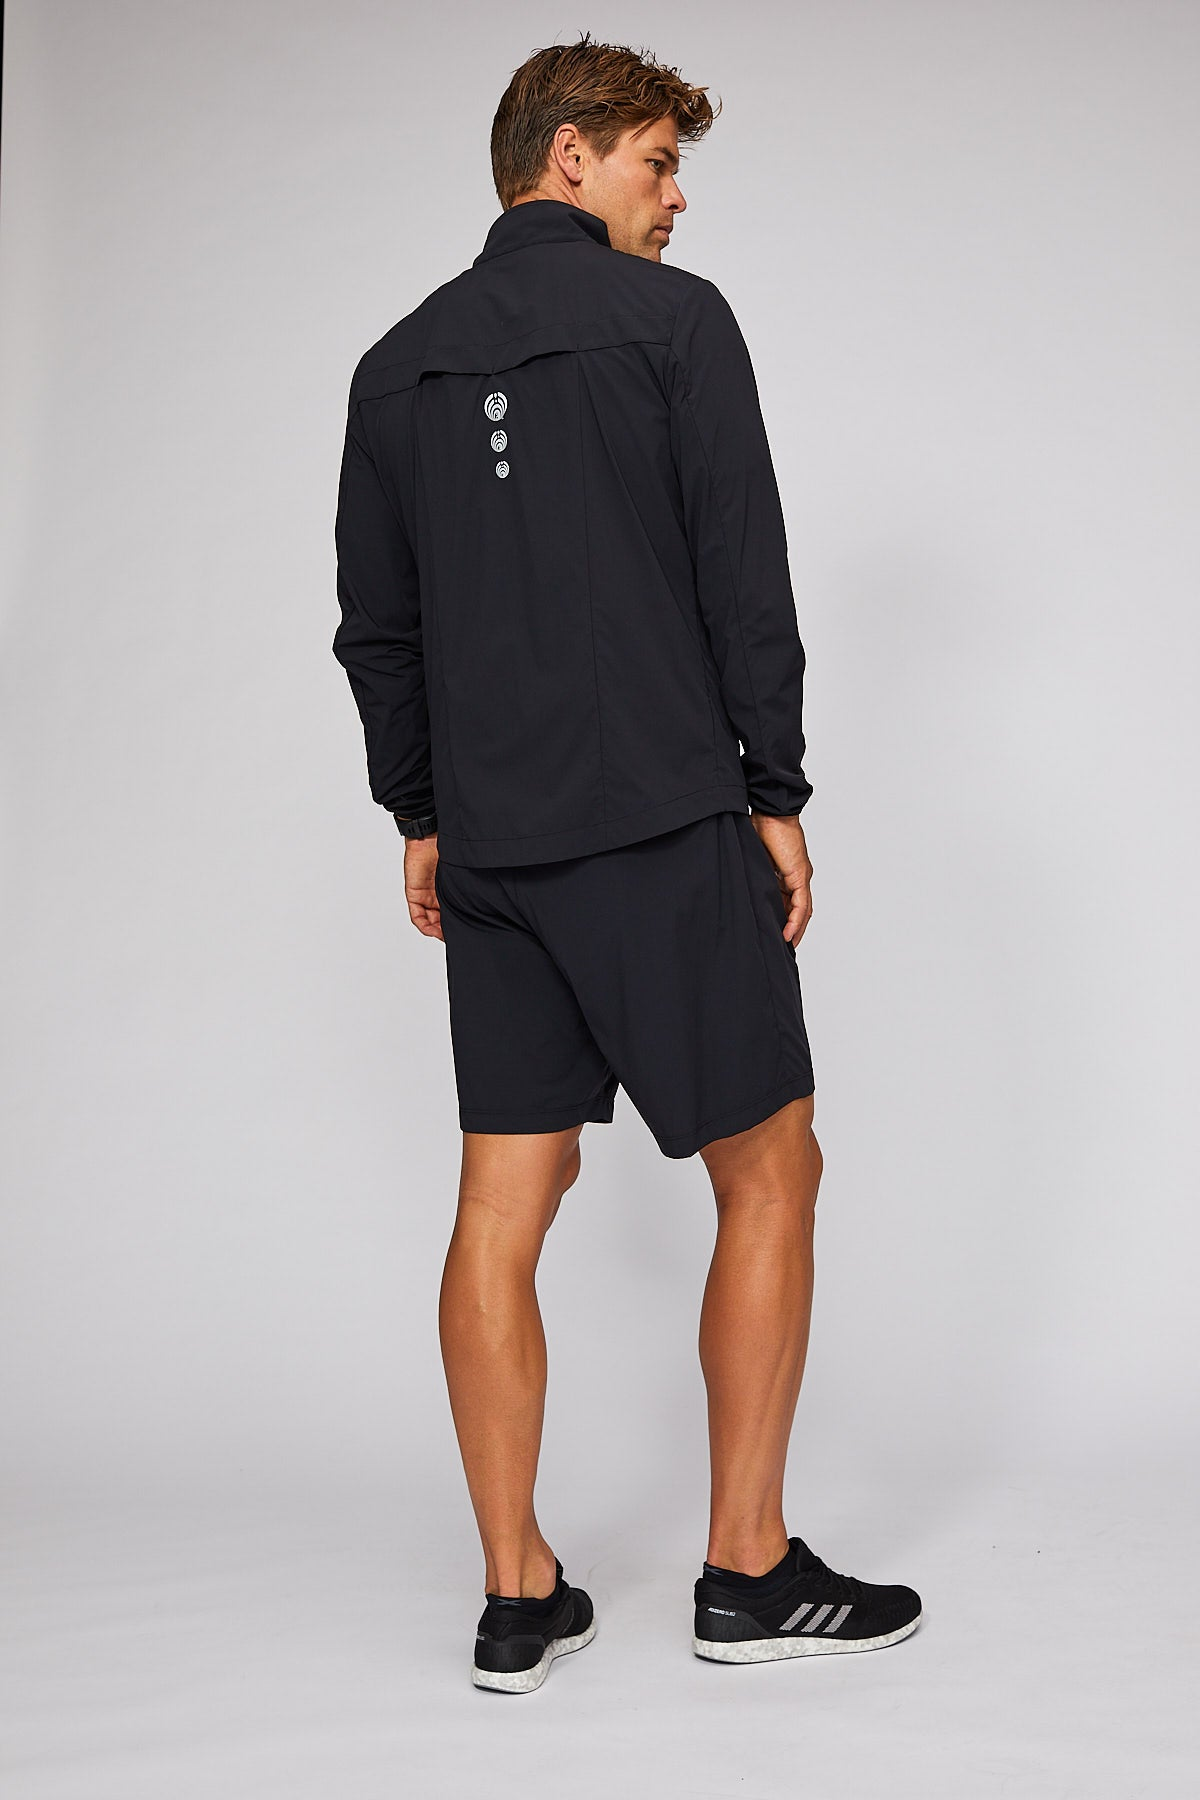 PERFORMANCE RUN JACKET - MENS